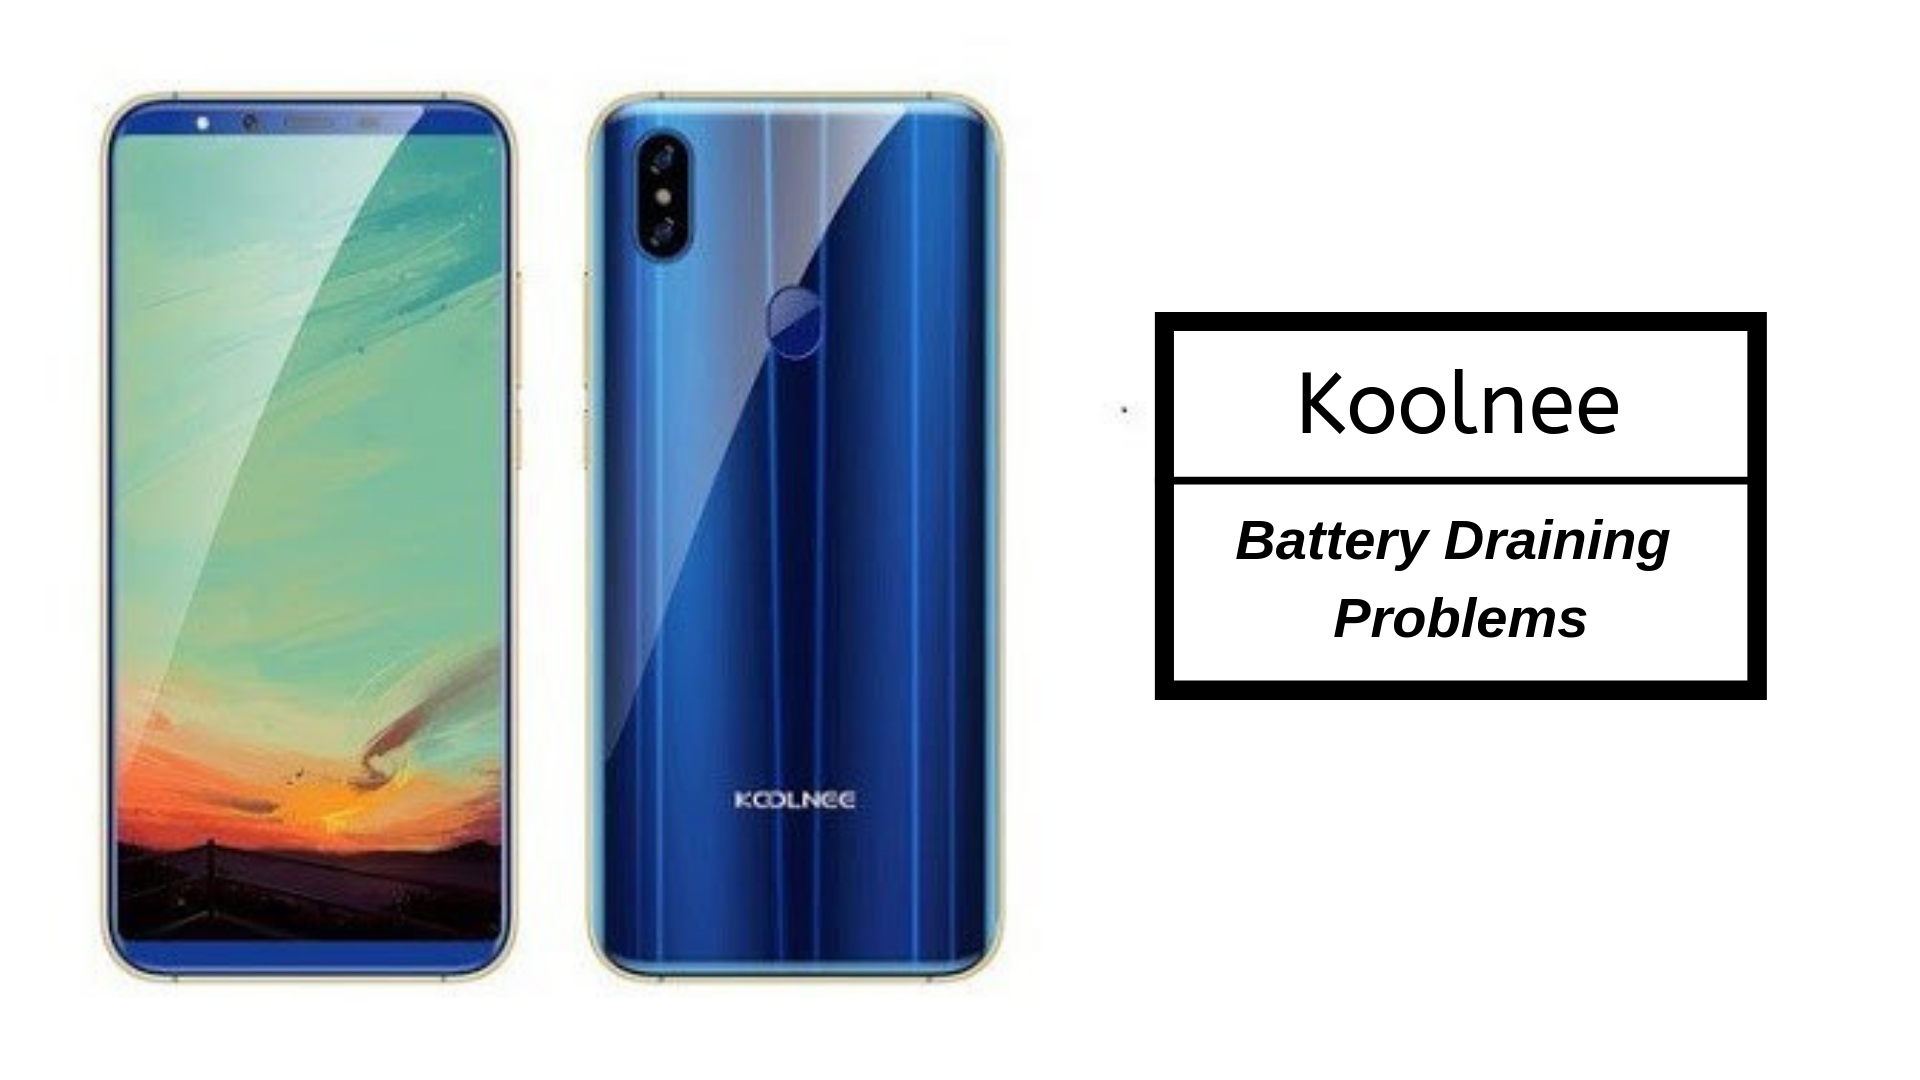 How Fix Koolnee Battery Draining Problems - Troubleshooting and Fixes